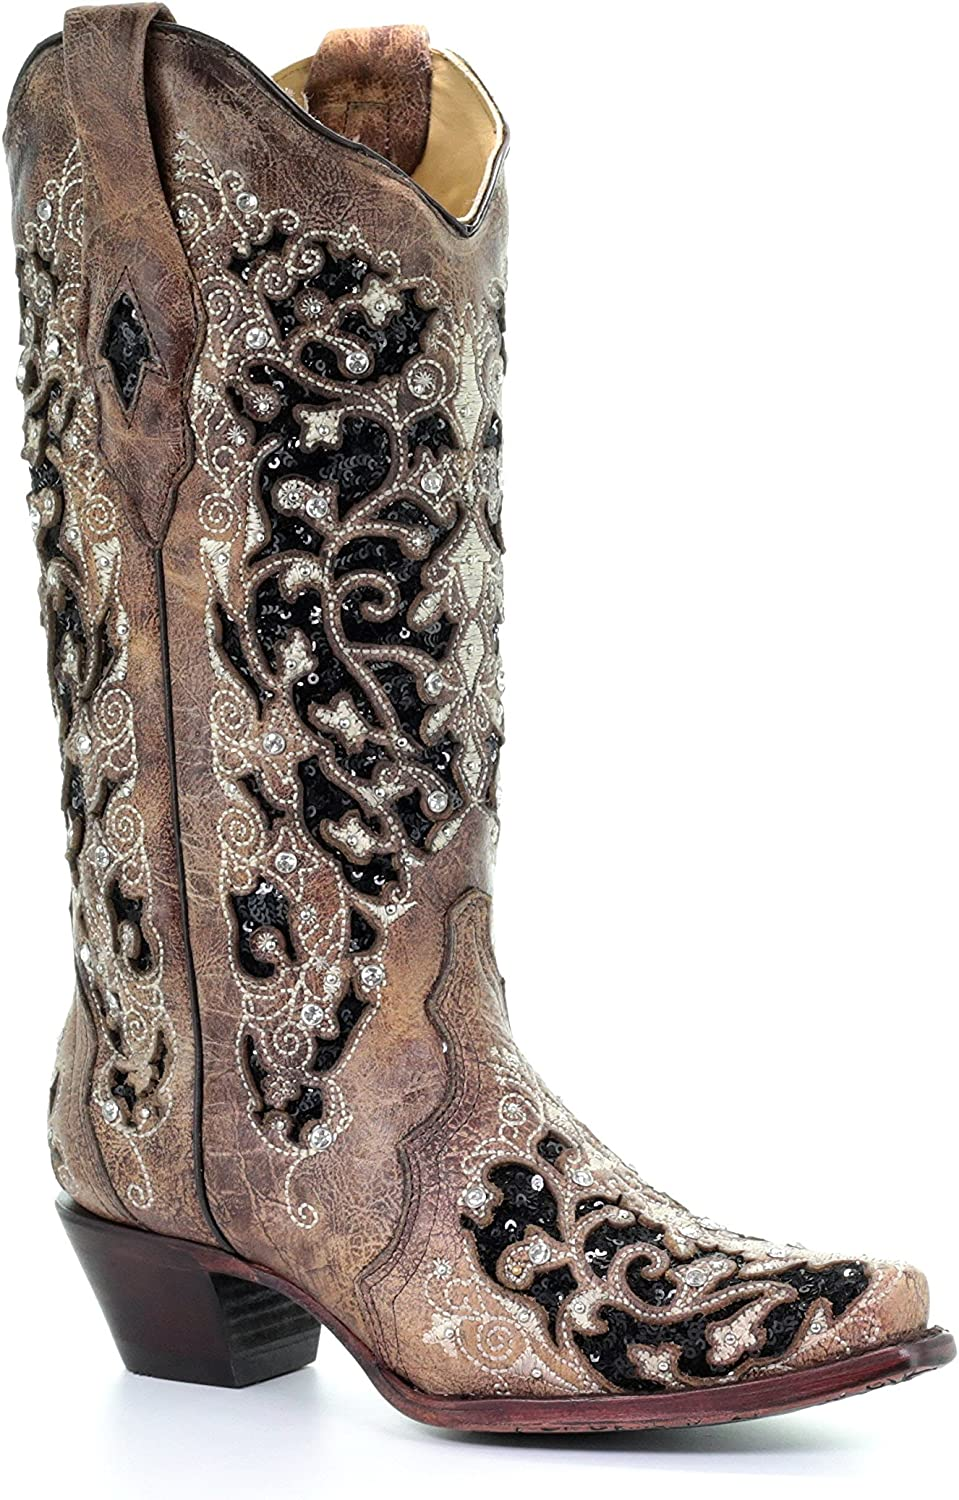 CORRAL womens Cowboy Boots